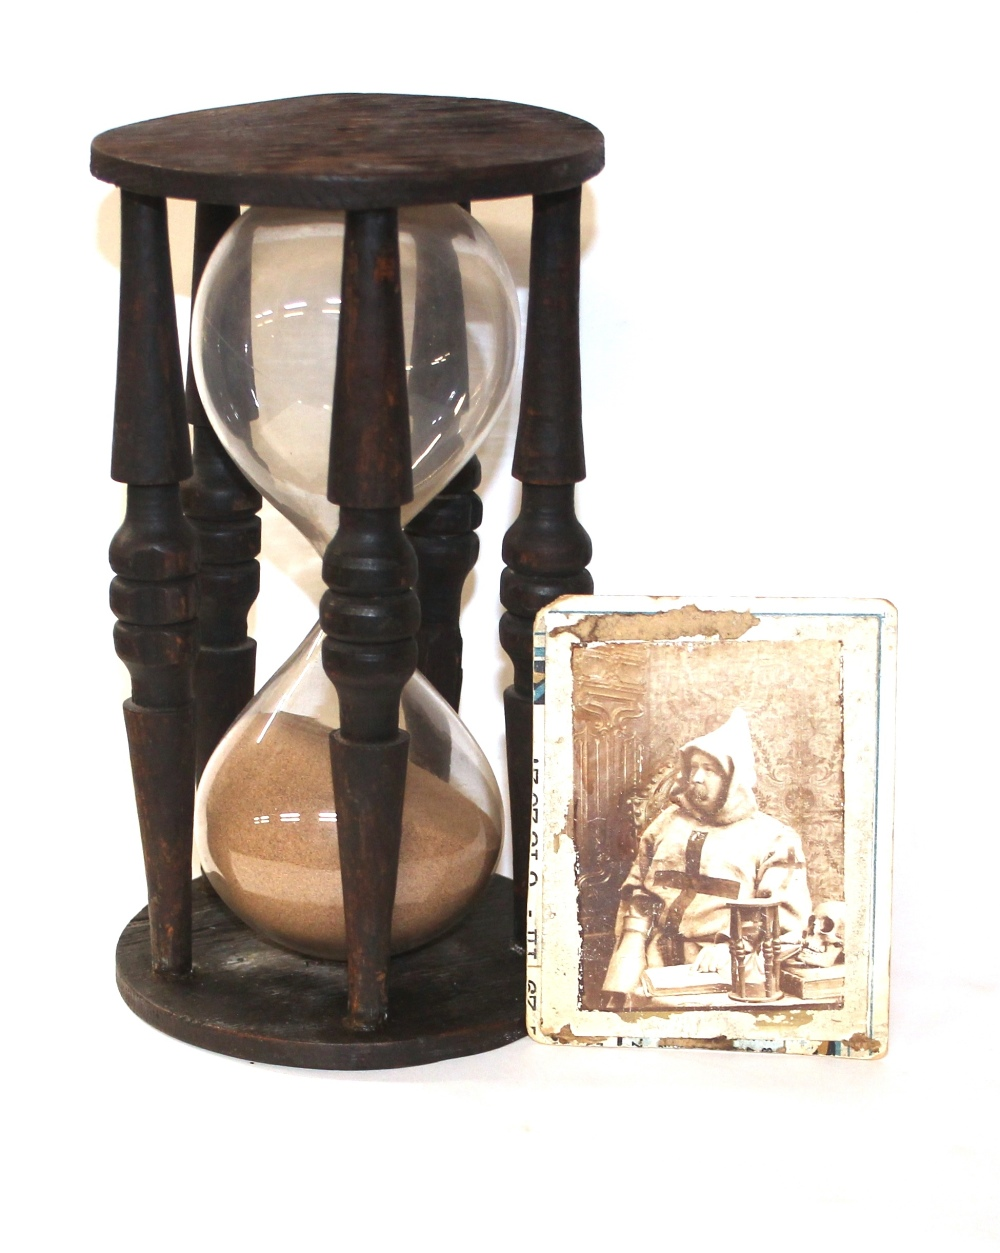 A large antique wooden hour glass with original bl